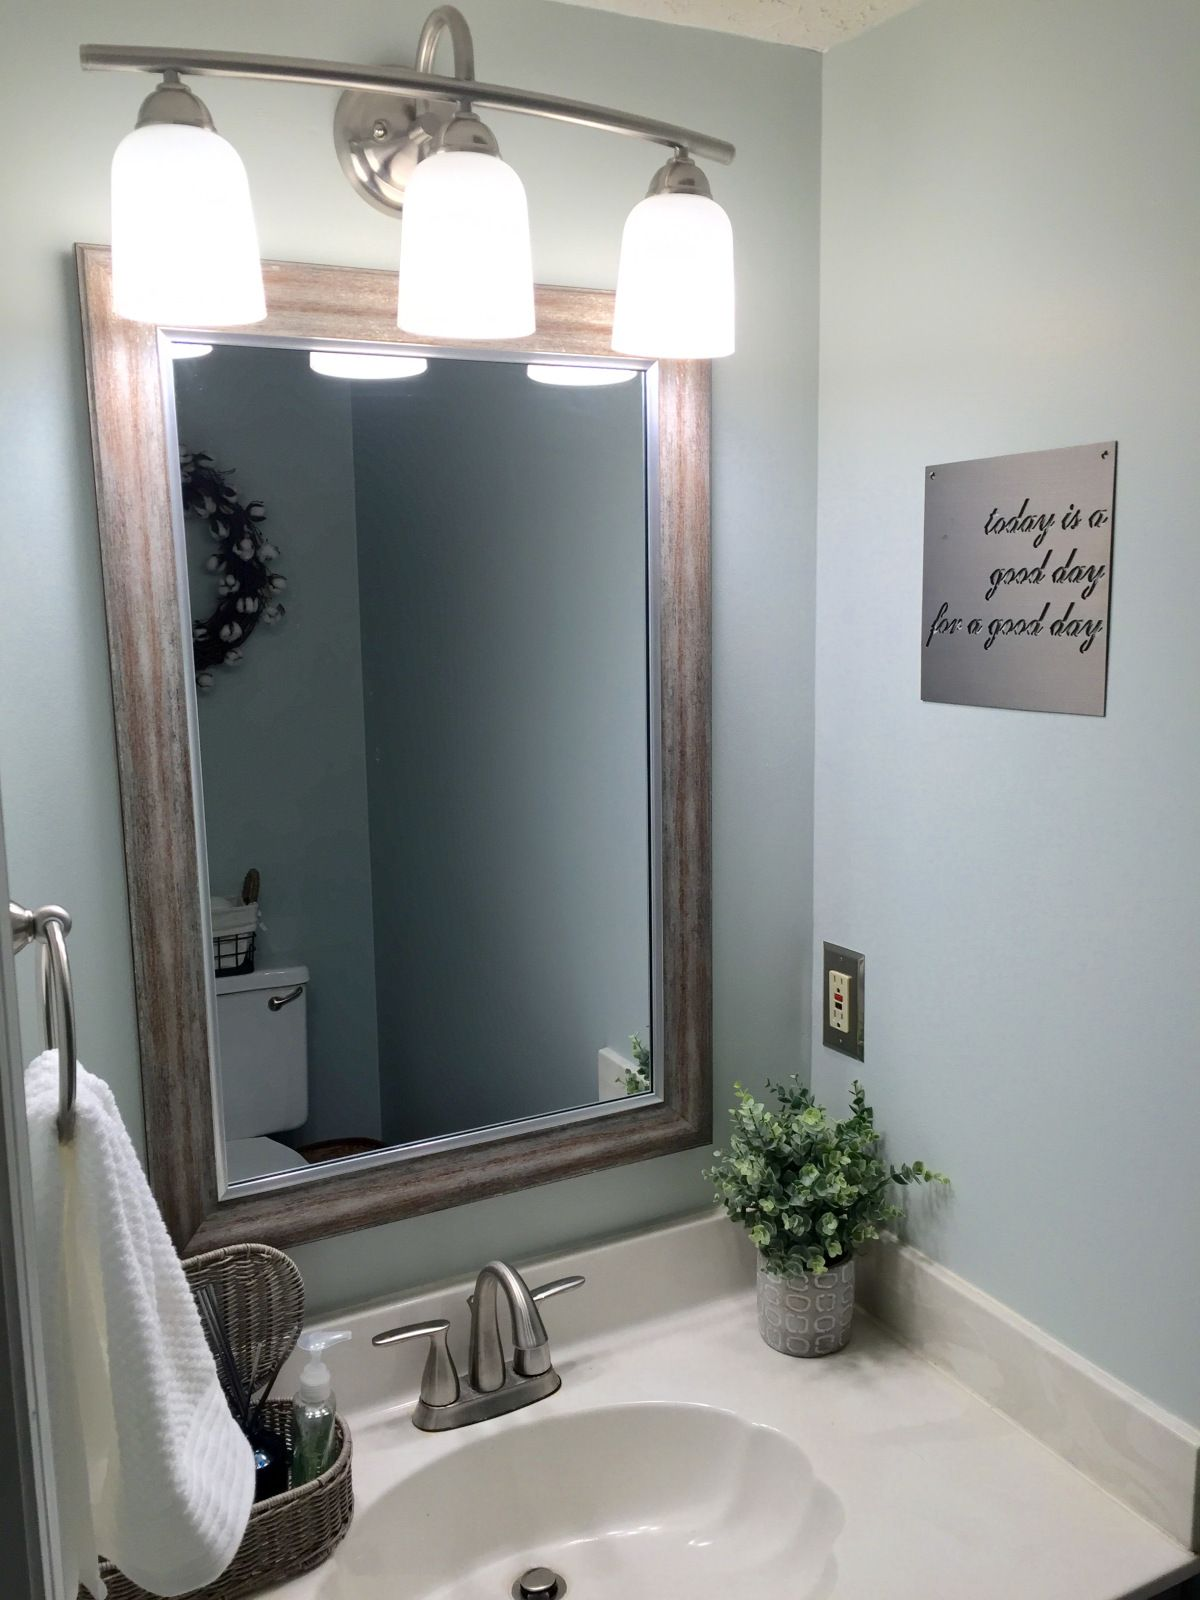 Farmhouse Small Half Bath Renovationfixer Upper Bathroom In New Half Bathroom Design Inspiration